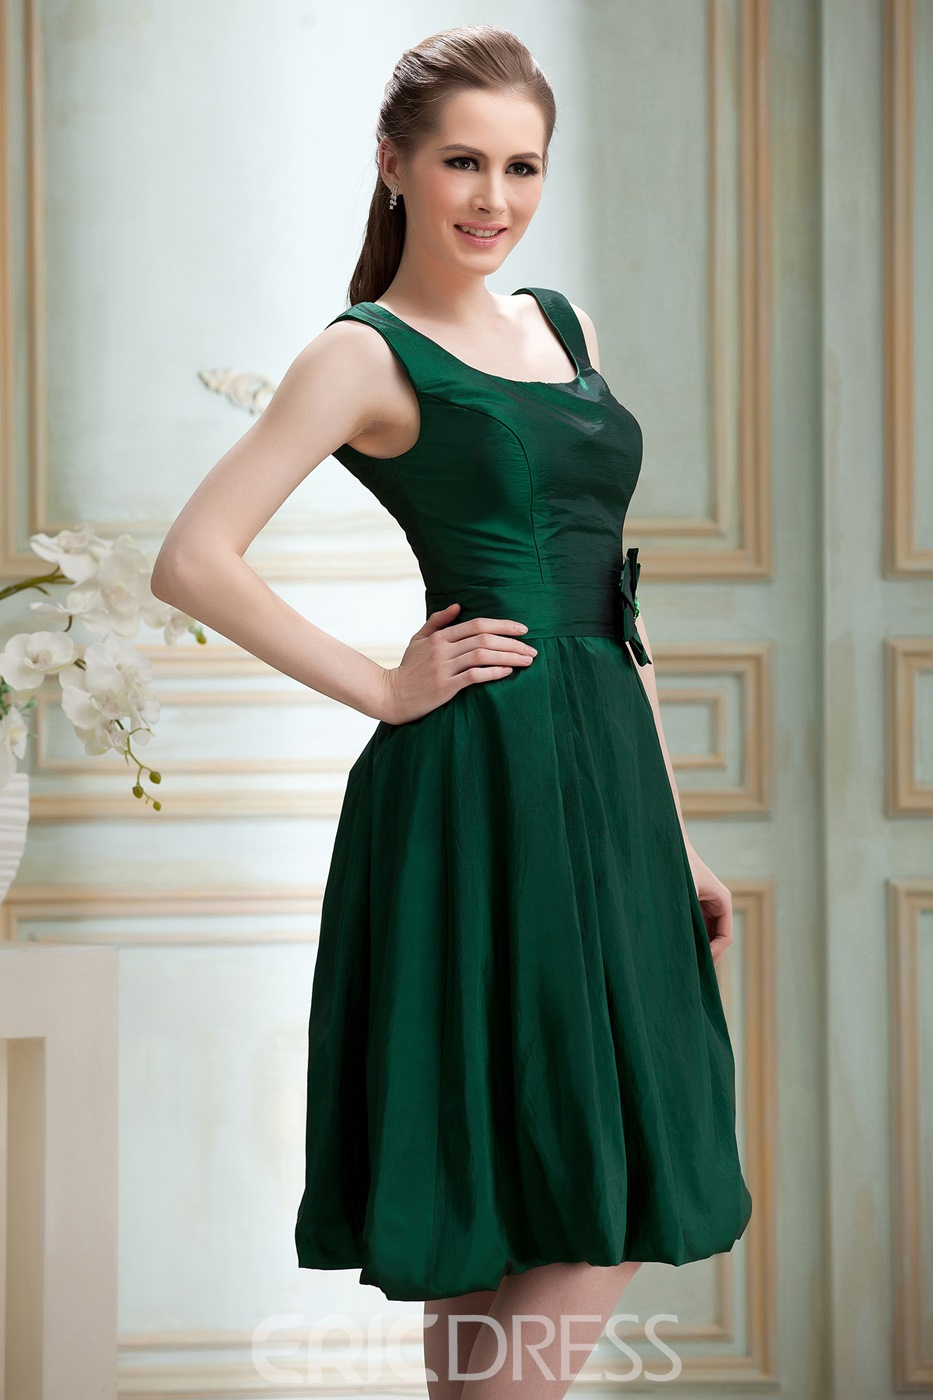 Elegant Scoop Short A-line Flower Knee-length Nadya's Bridesmaid Dress